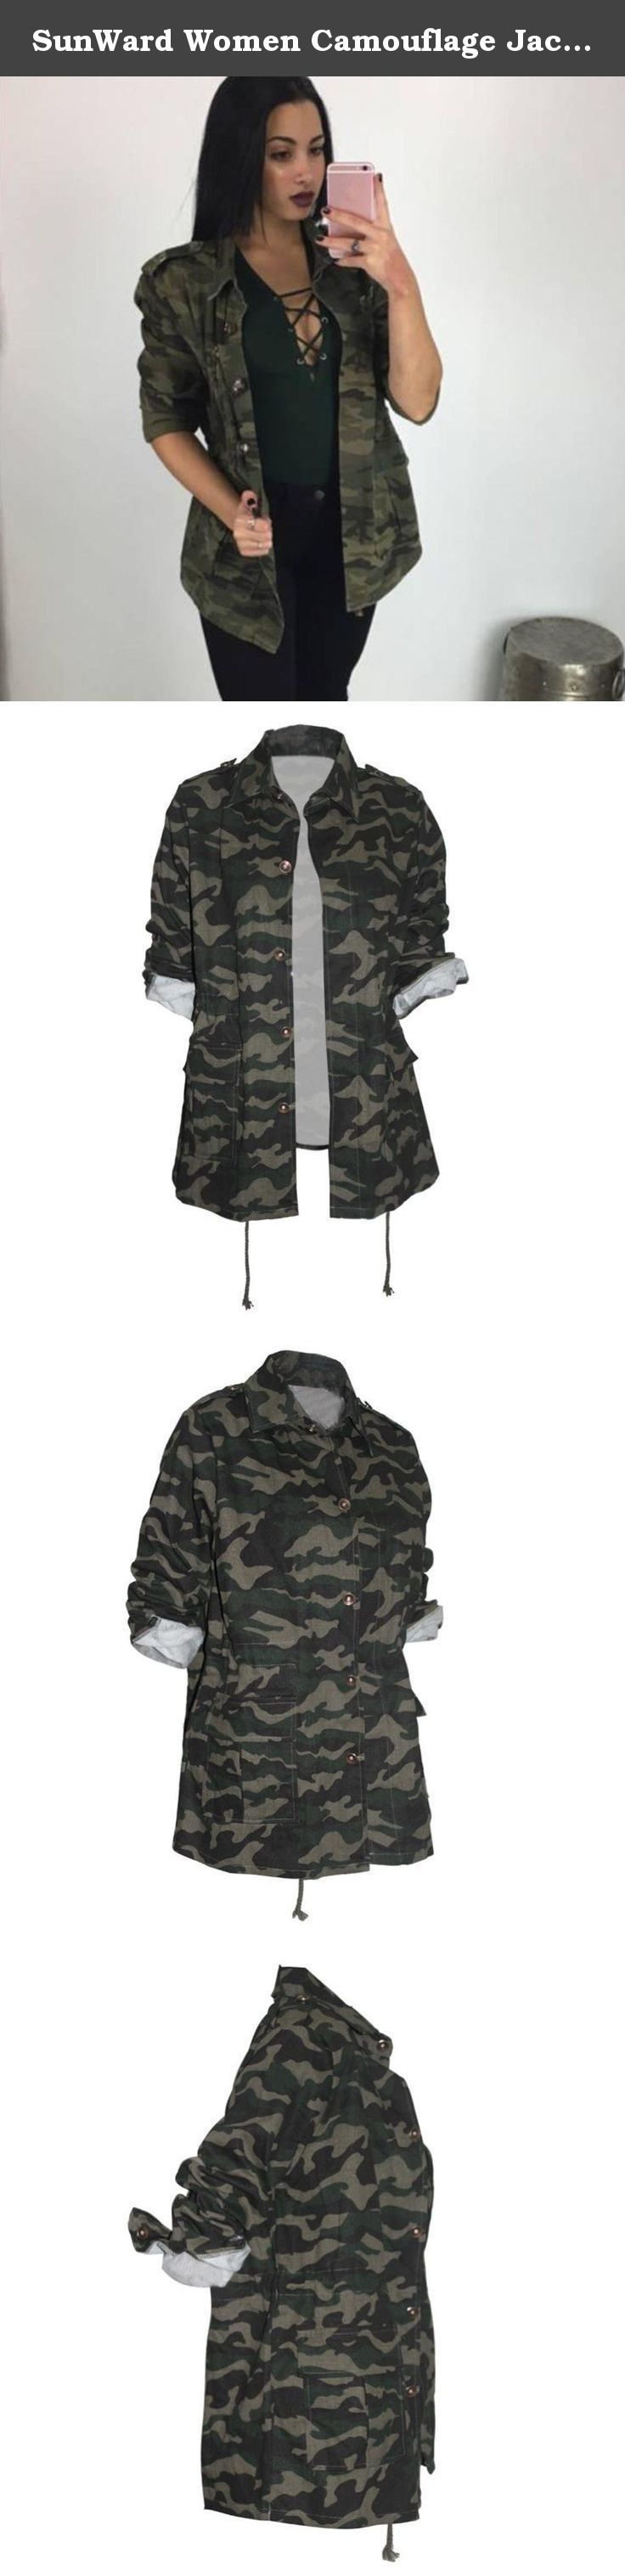 SunWard Women Camouflage Jacket Coat Autumn Winter Street Jacket Women Casual Jackets (L, Camouflage). Women Camouflage Jacket Coat Autumn Winter Street Jacket Women Casual Jackets Item specifics Gender:Women Season:Fall,Winter Occasion:Party,Daily Material:Cotton blend Decoration:Bandage Clothing Length:Regular Pattern Type:Camouflage Sleeve Style:Regular Style:Fashion,Causal Sleeve Length:Full Package include:1PC Women Coat.